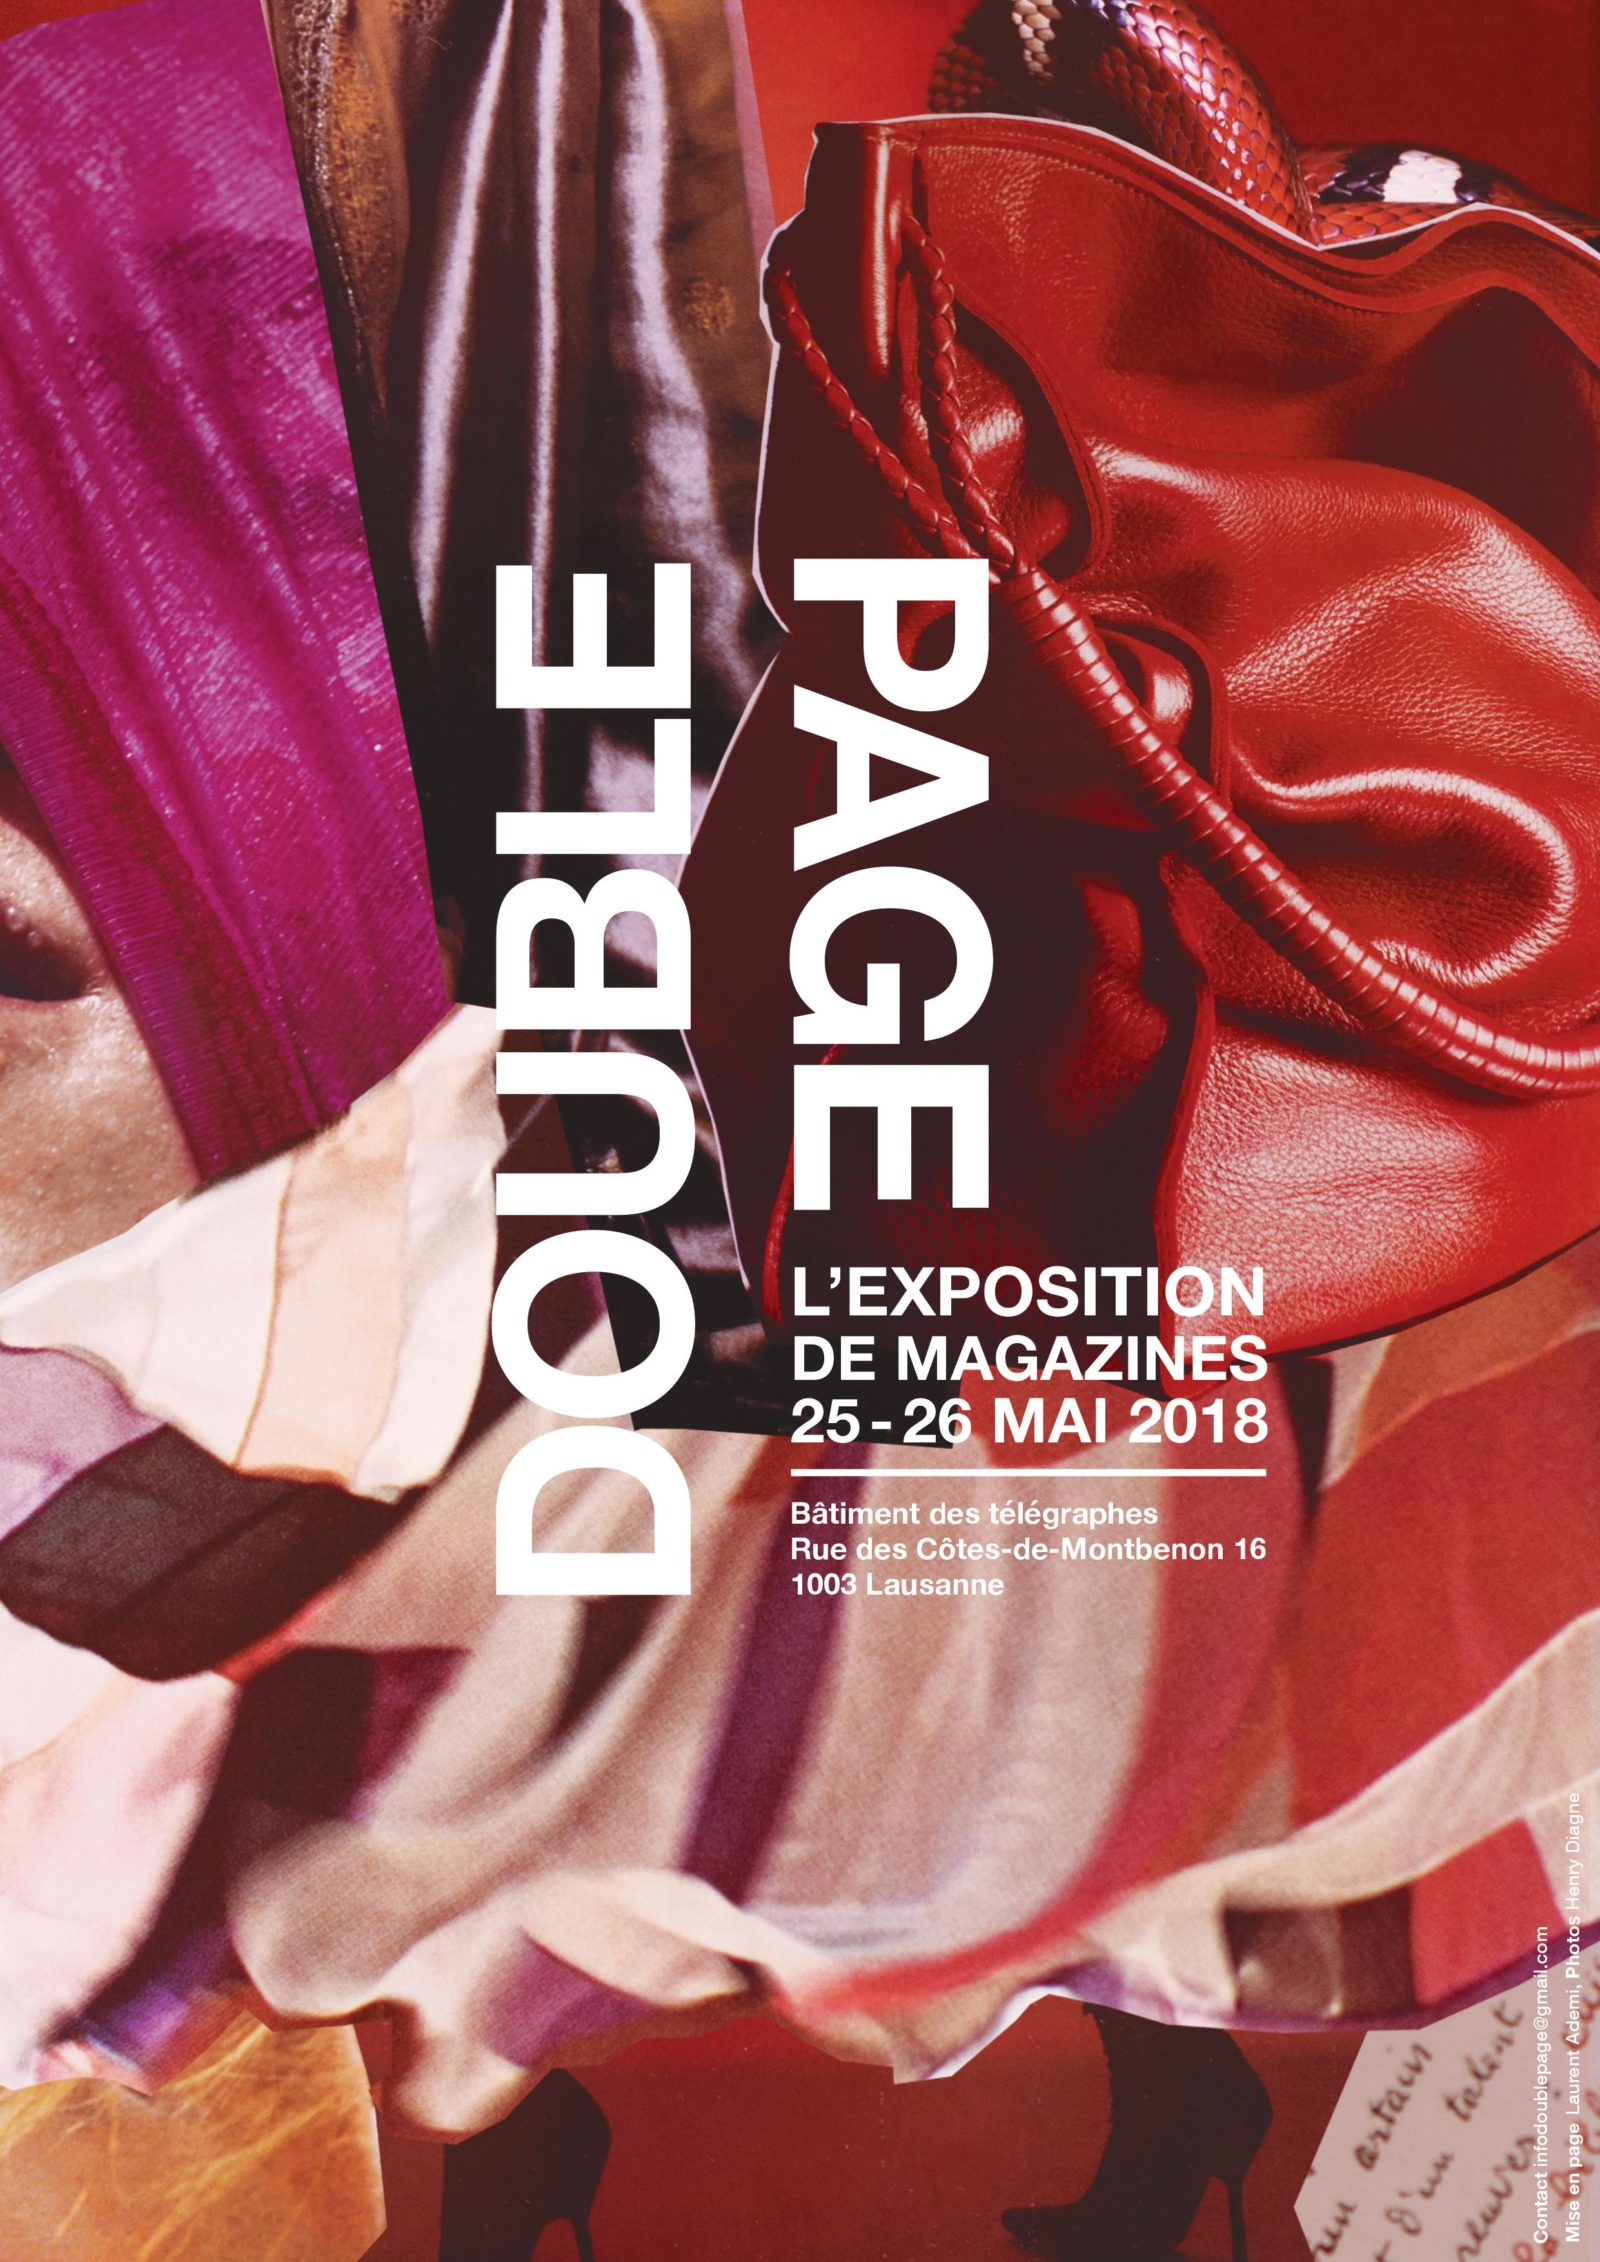 Affiche Double Page